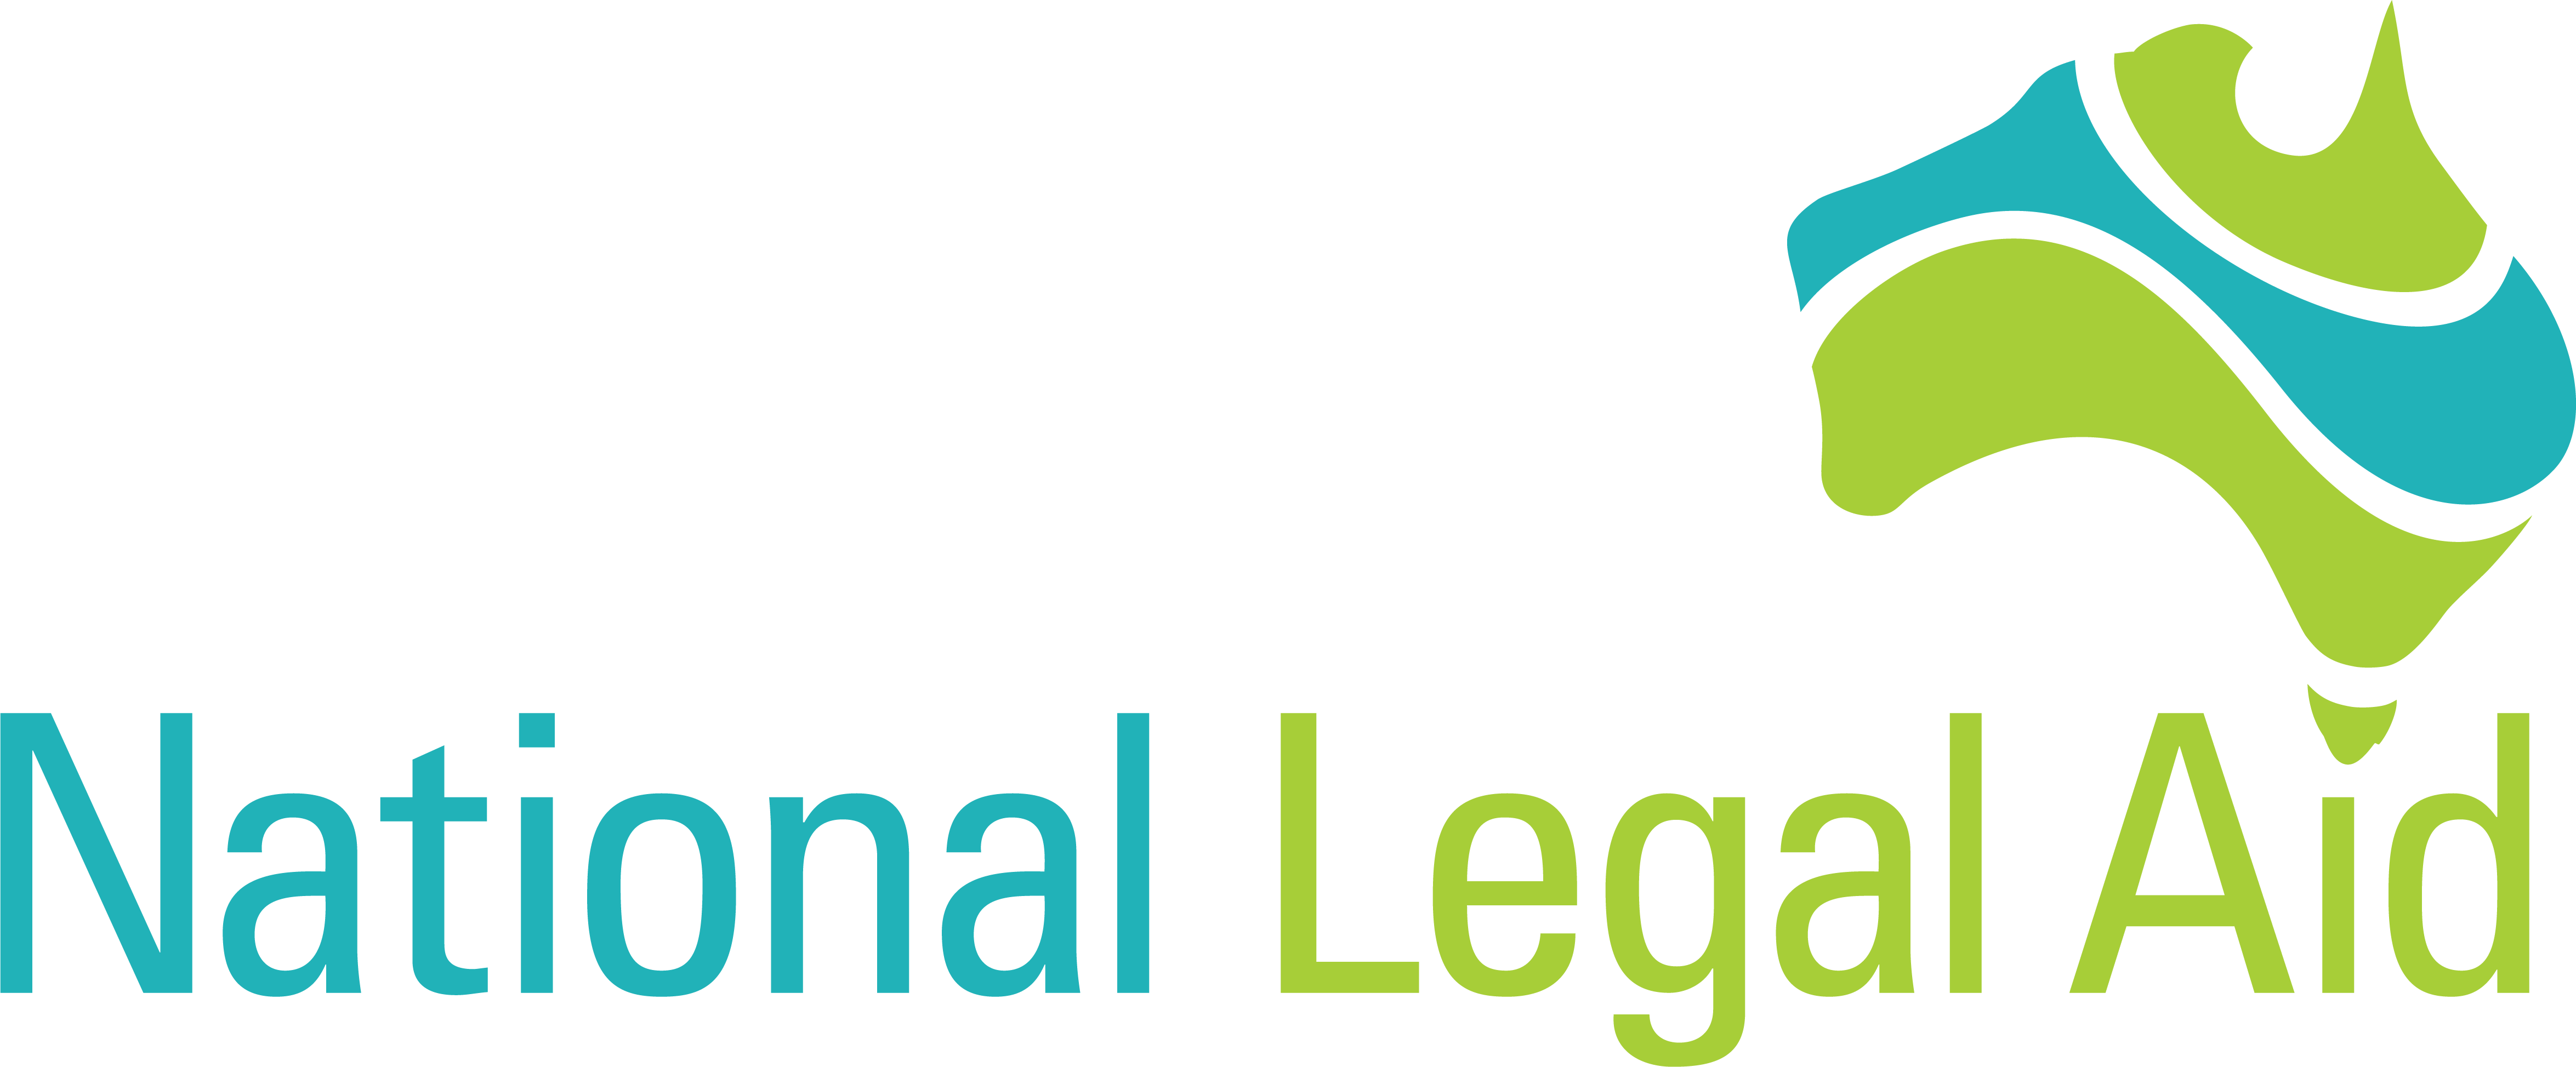 National Legal Aid - Logo